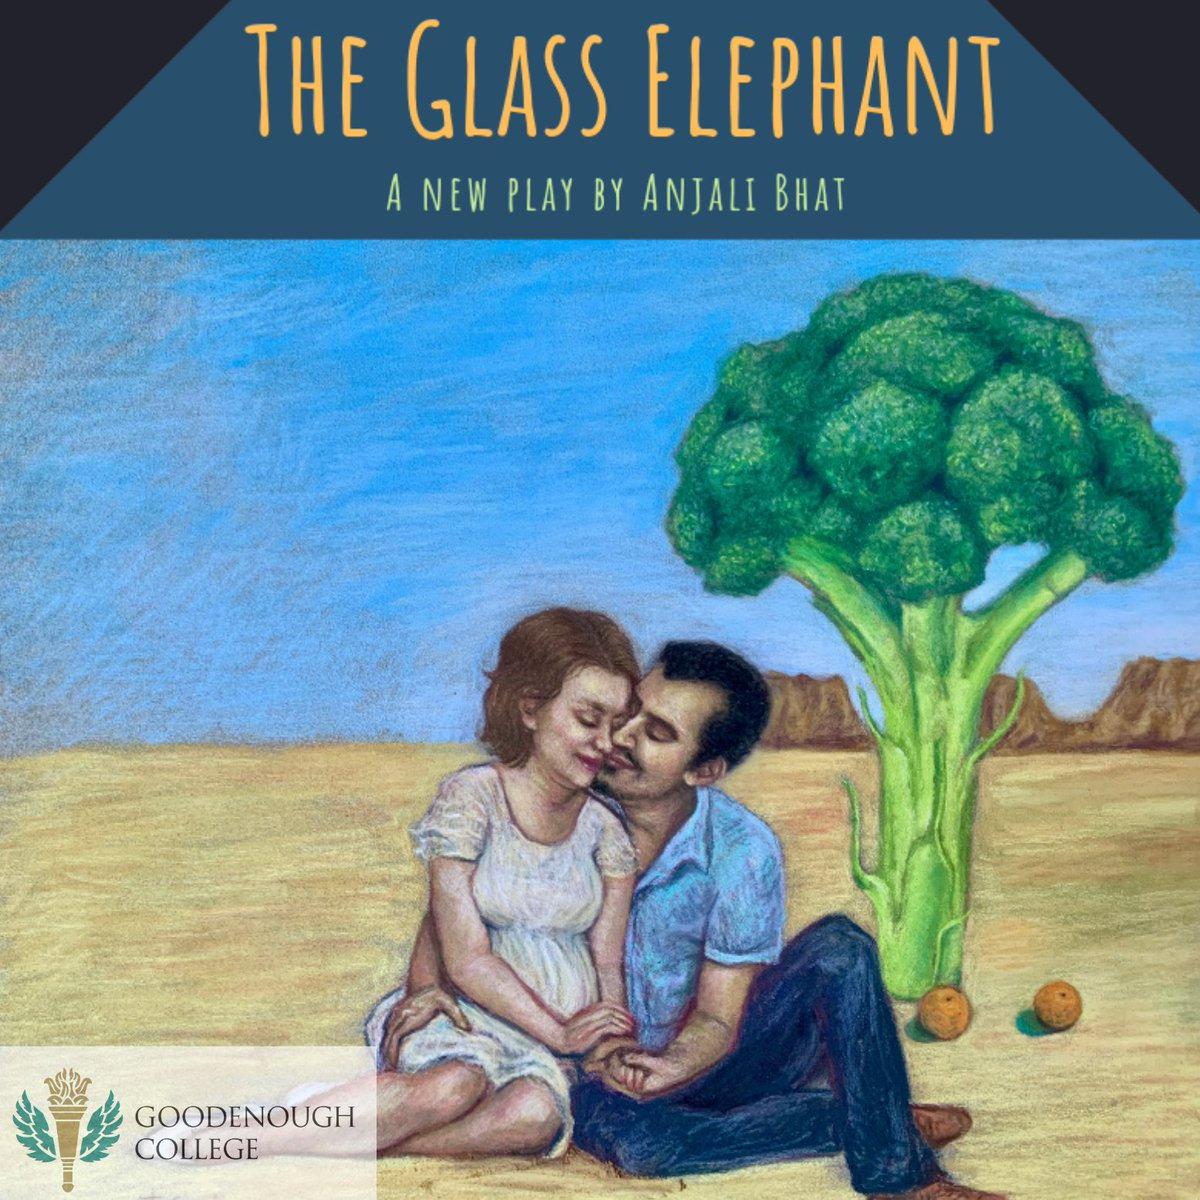 Apparently it's #WorldElephantDay so we'd like to give a shout out to the @TheGlassElly team 😃ahead of their #edinburghfringe2019 and #BloomsburyFest2019 performances http://bloomsburyfestival.org.uk/event/the-glass-elephant-goodenough-theatre-company/…